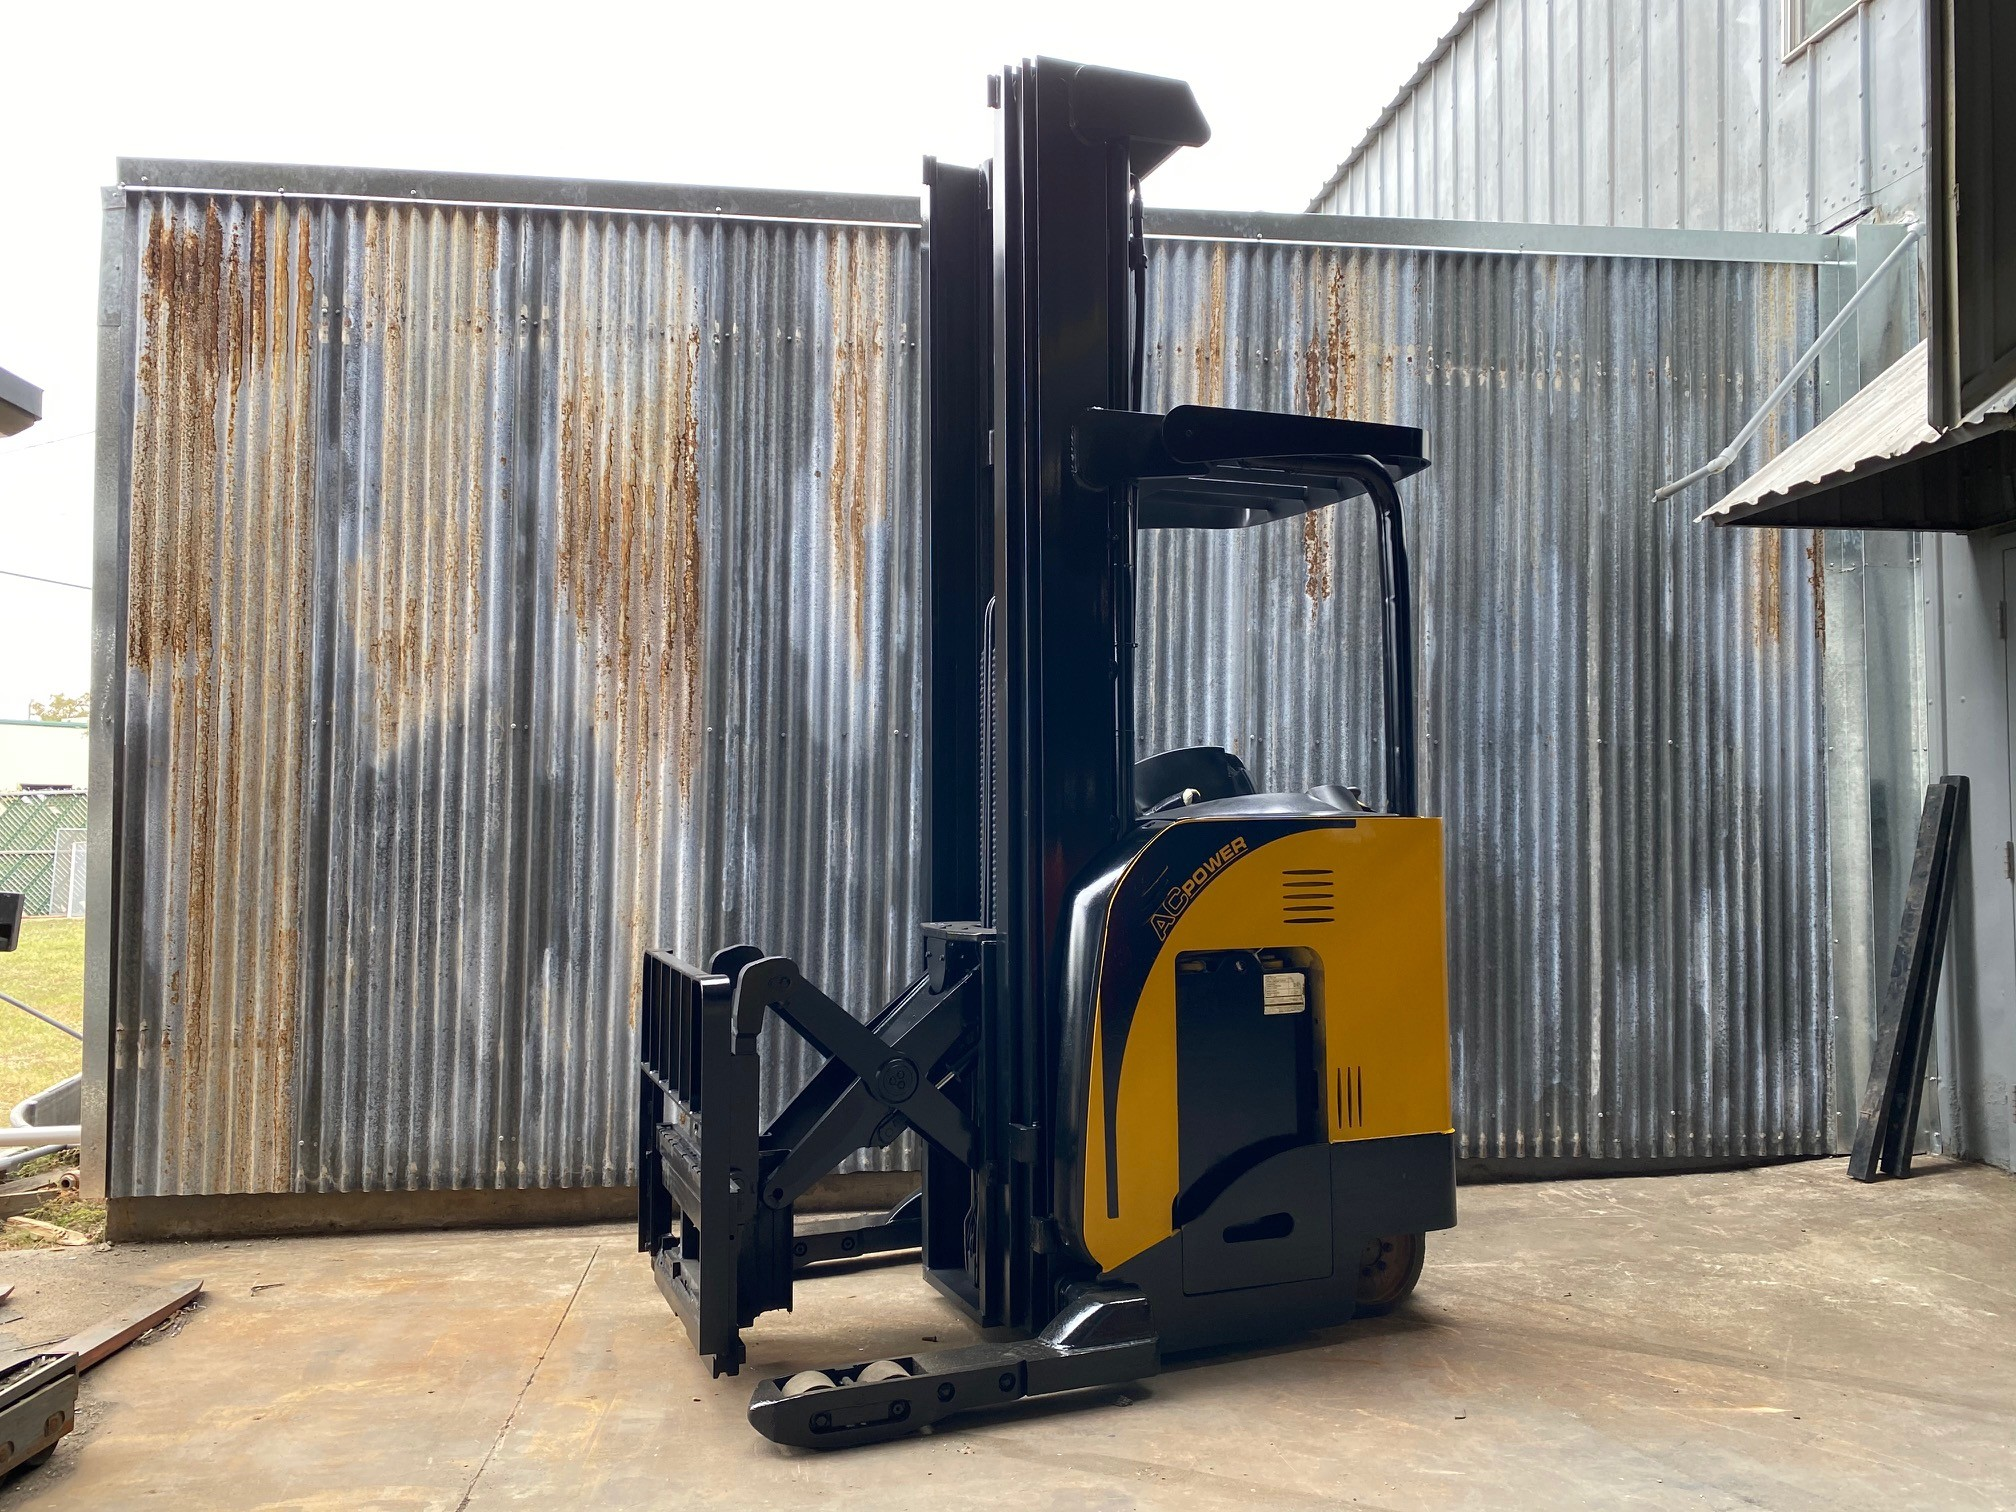 Used, 2014, Yale, NR045EB, Forklifts / Lift Trucks